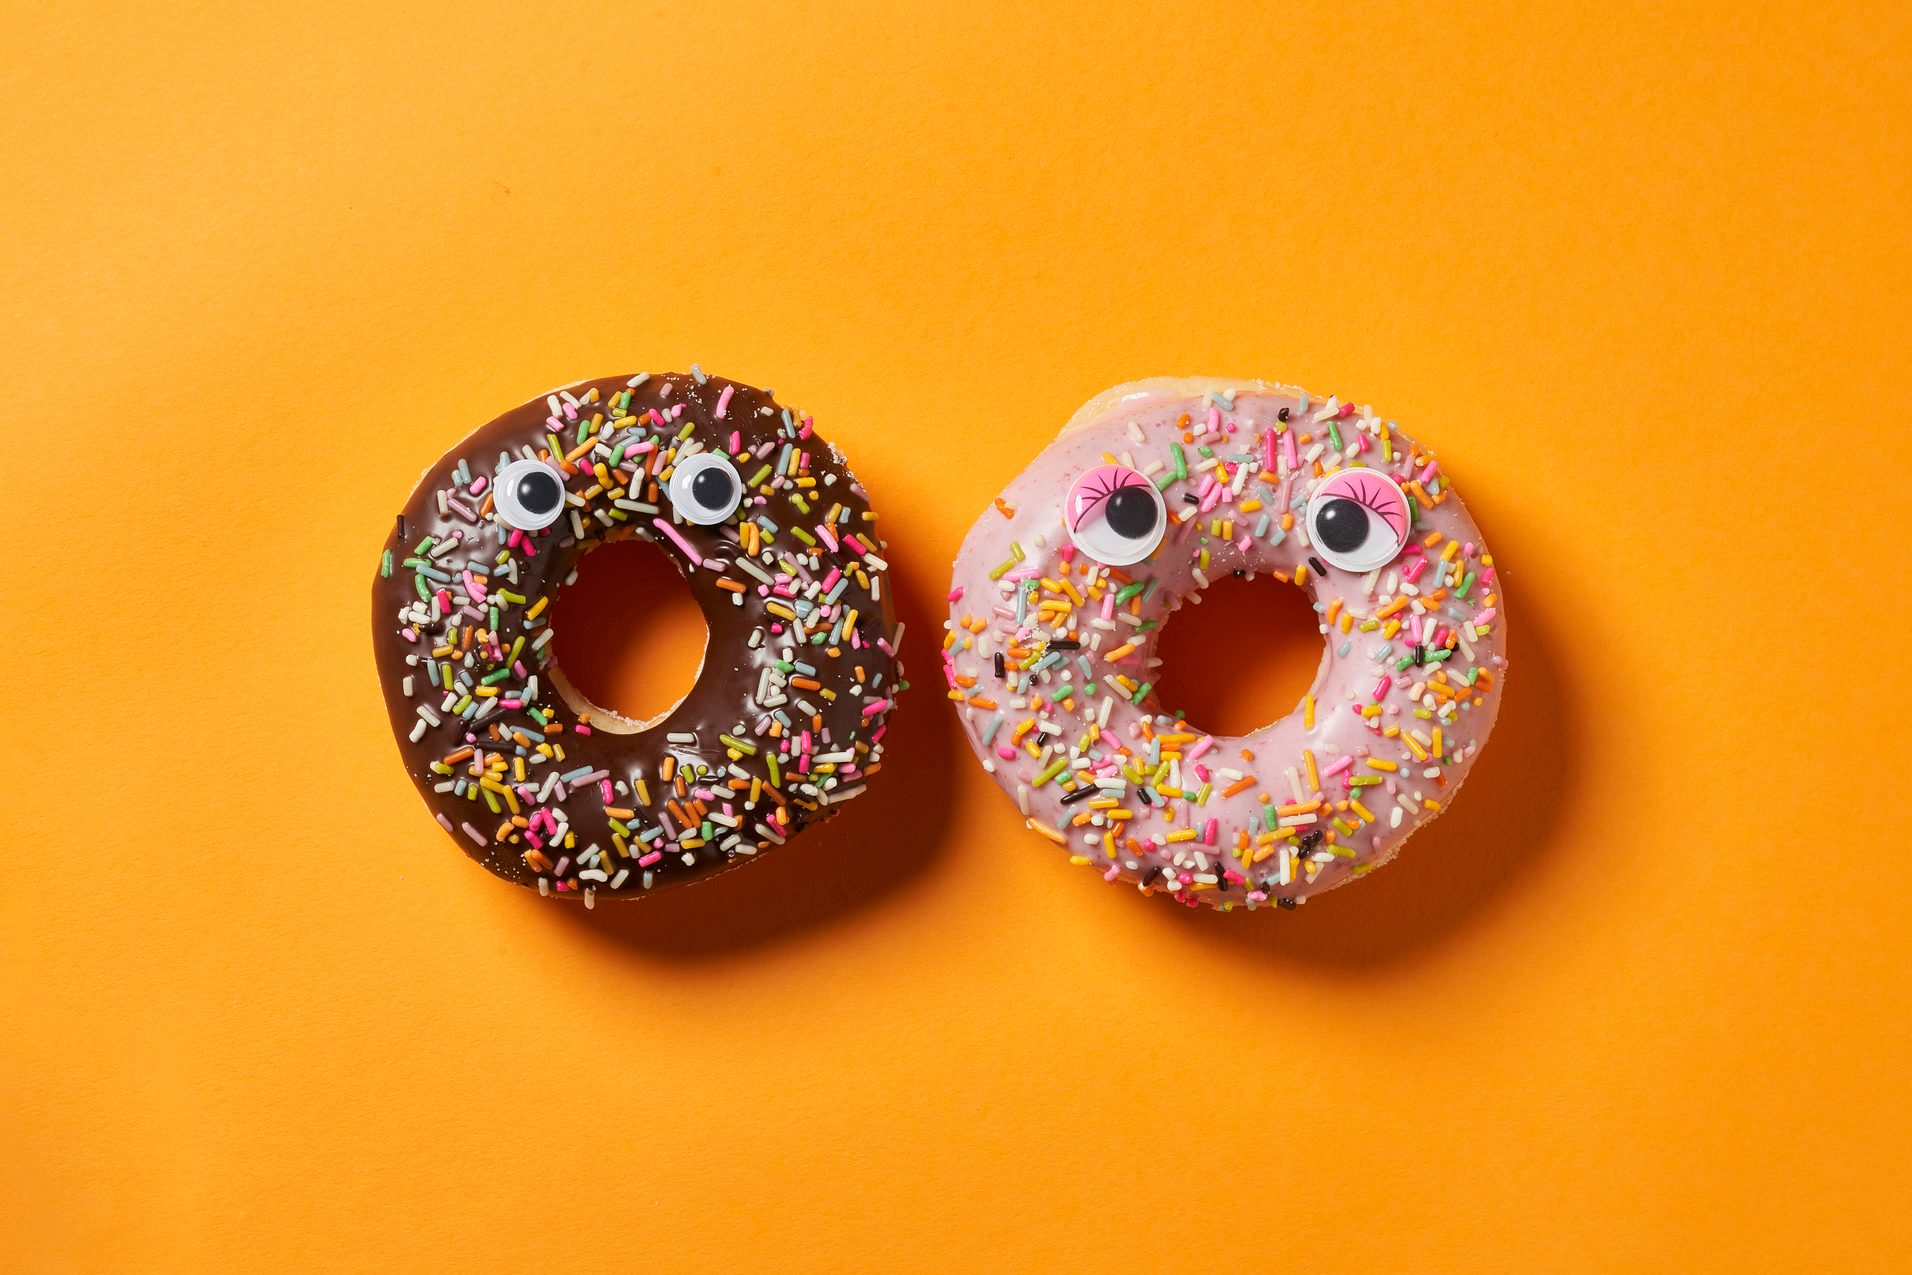 Two Sprinkle Donut with googly eyes on orange background